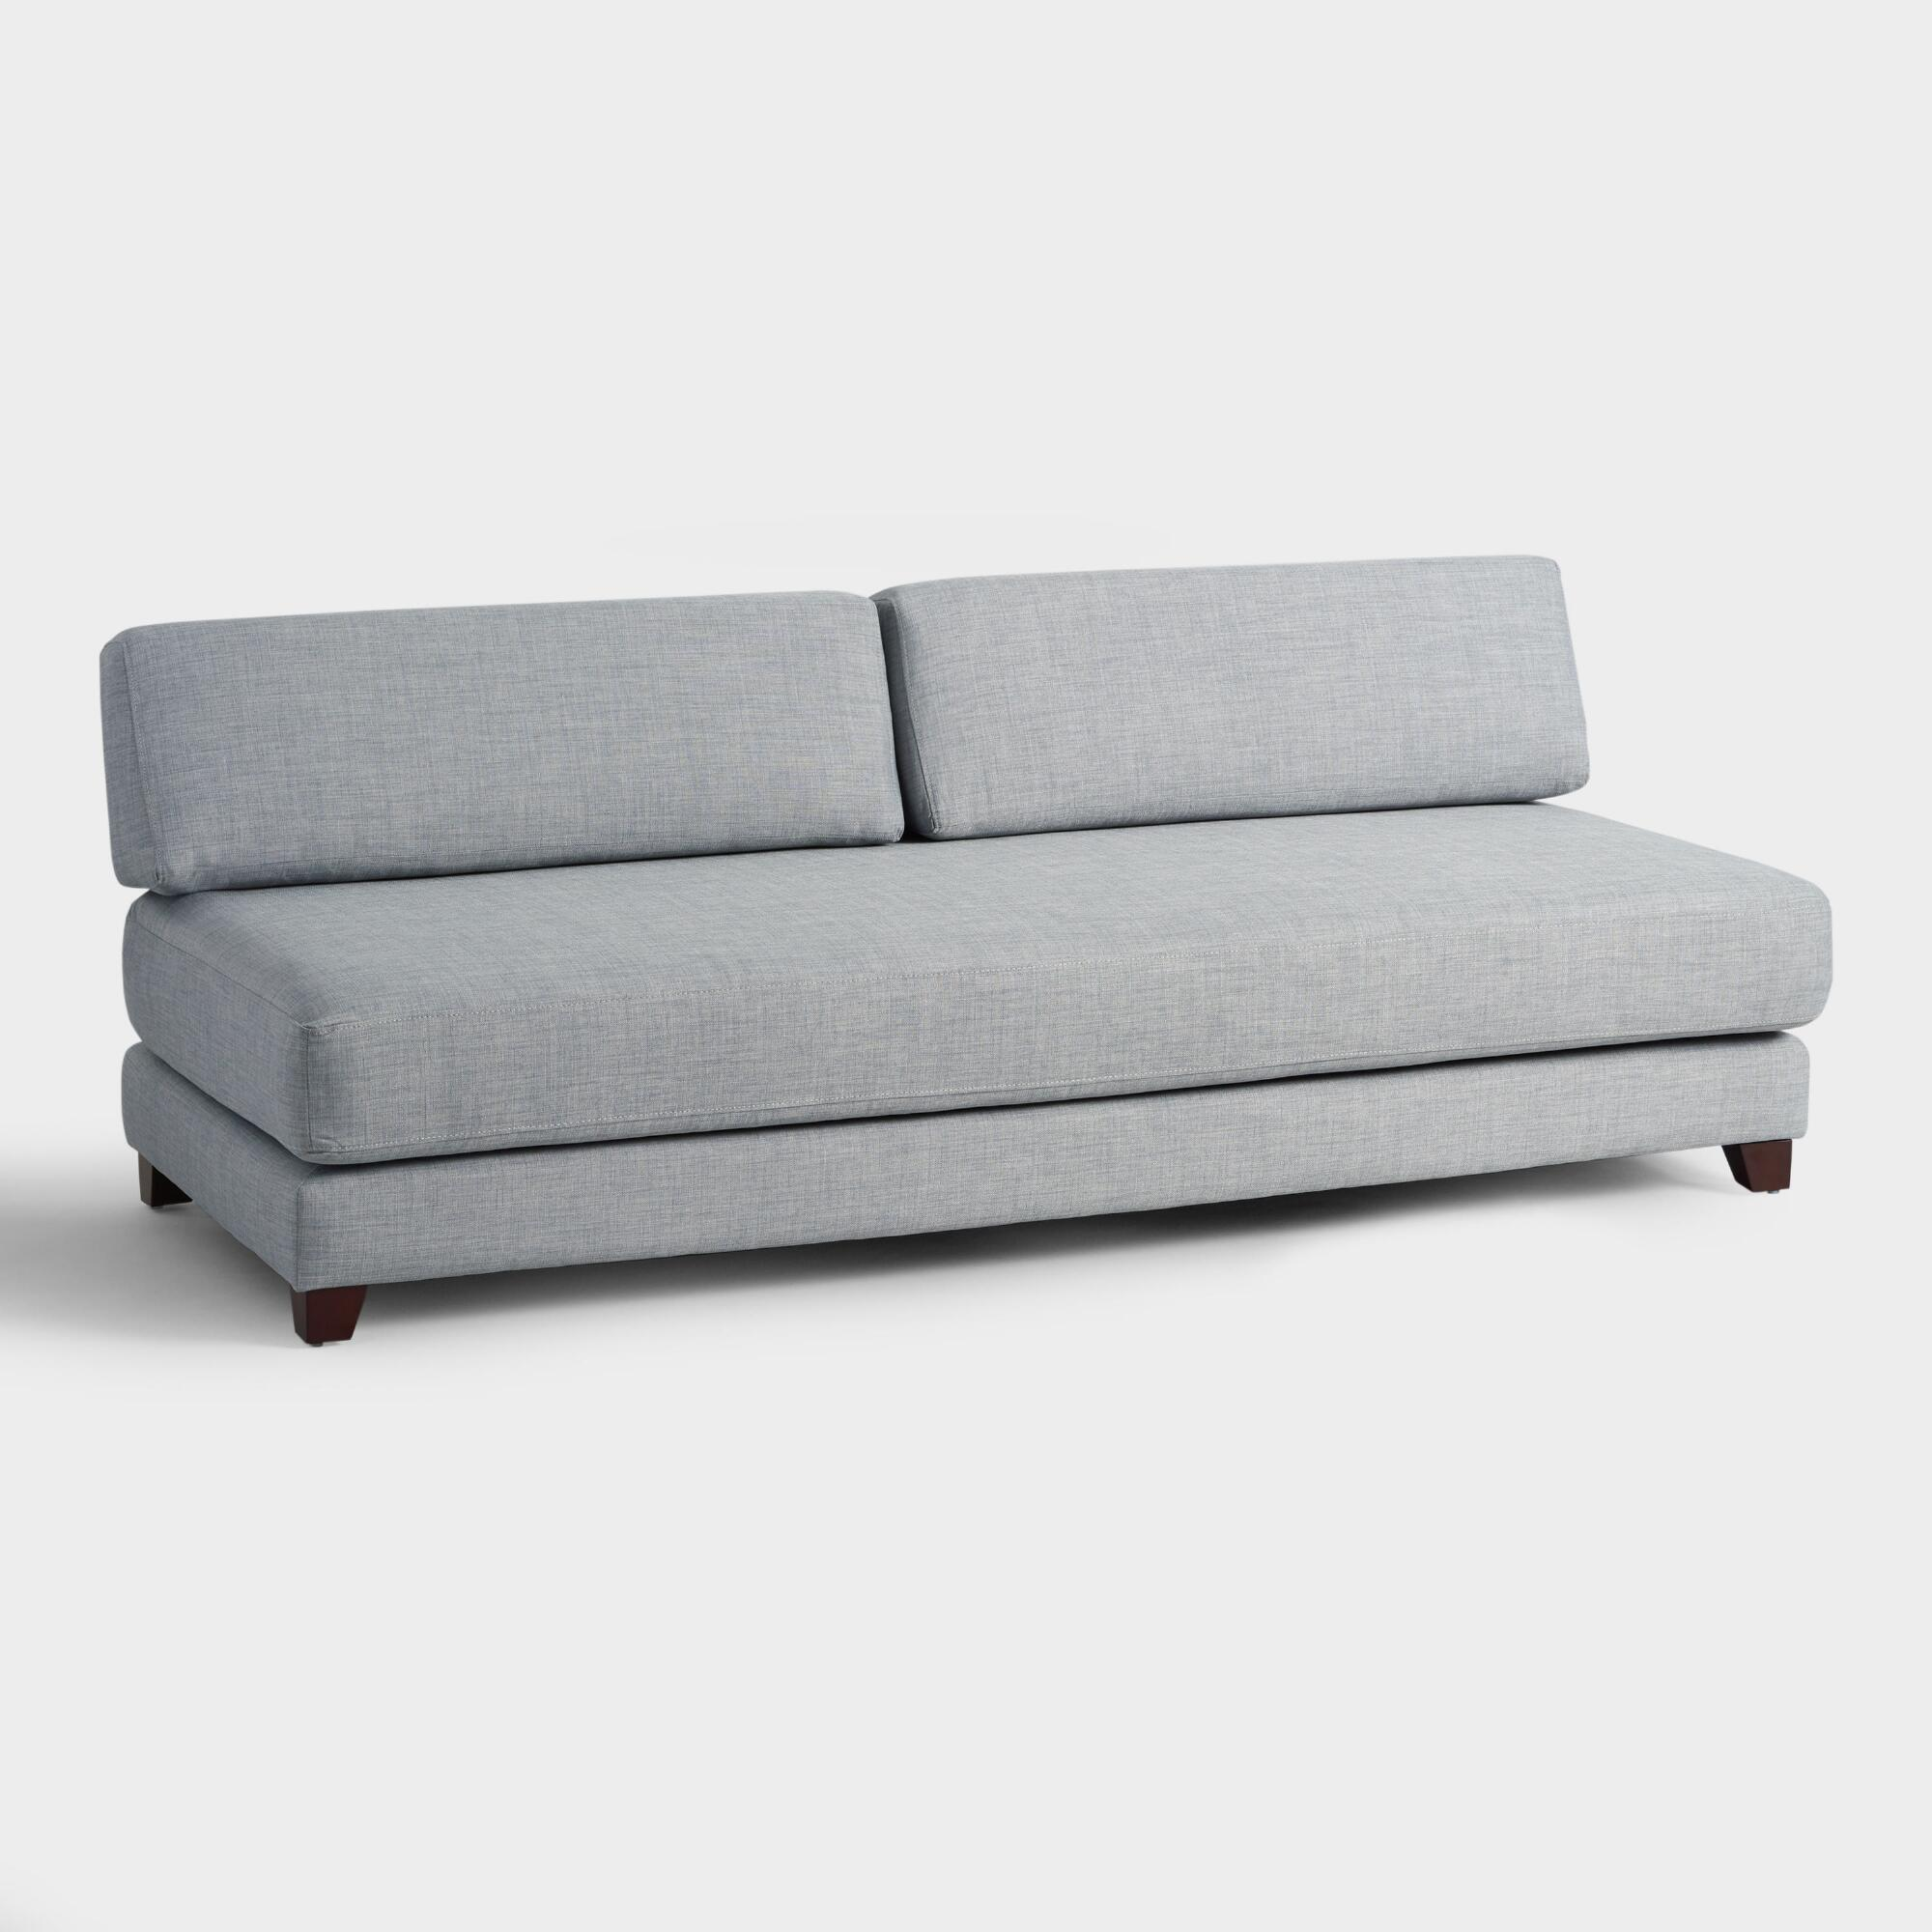 Light Gray Hartley Upholstered Duet Daybed By World Market